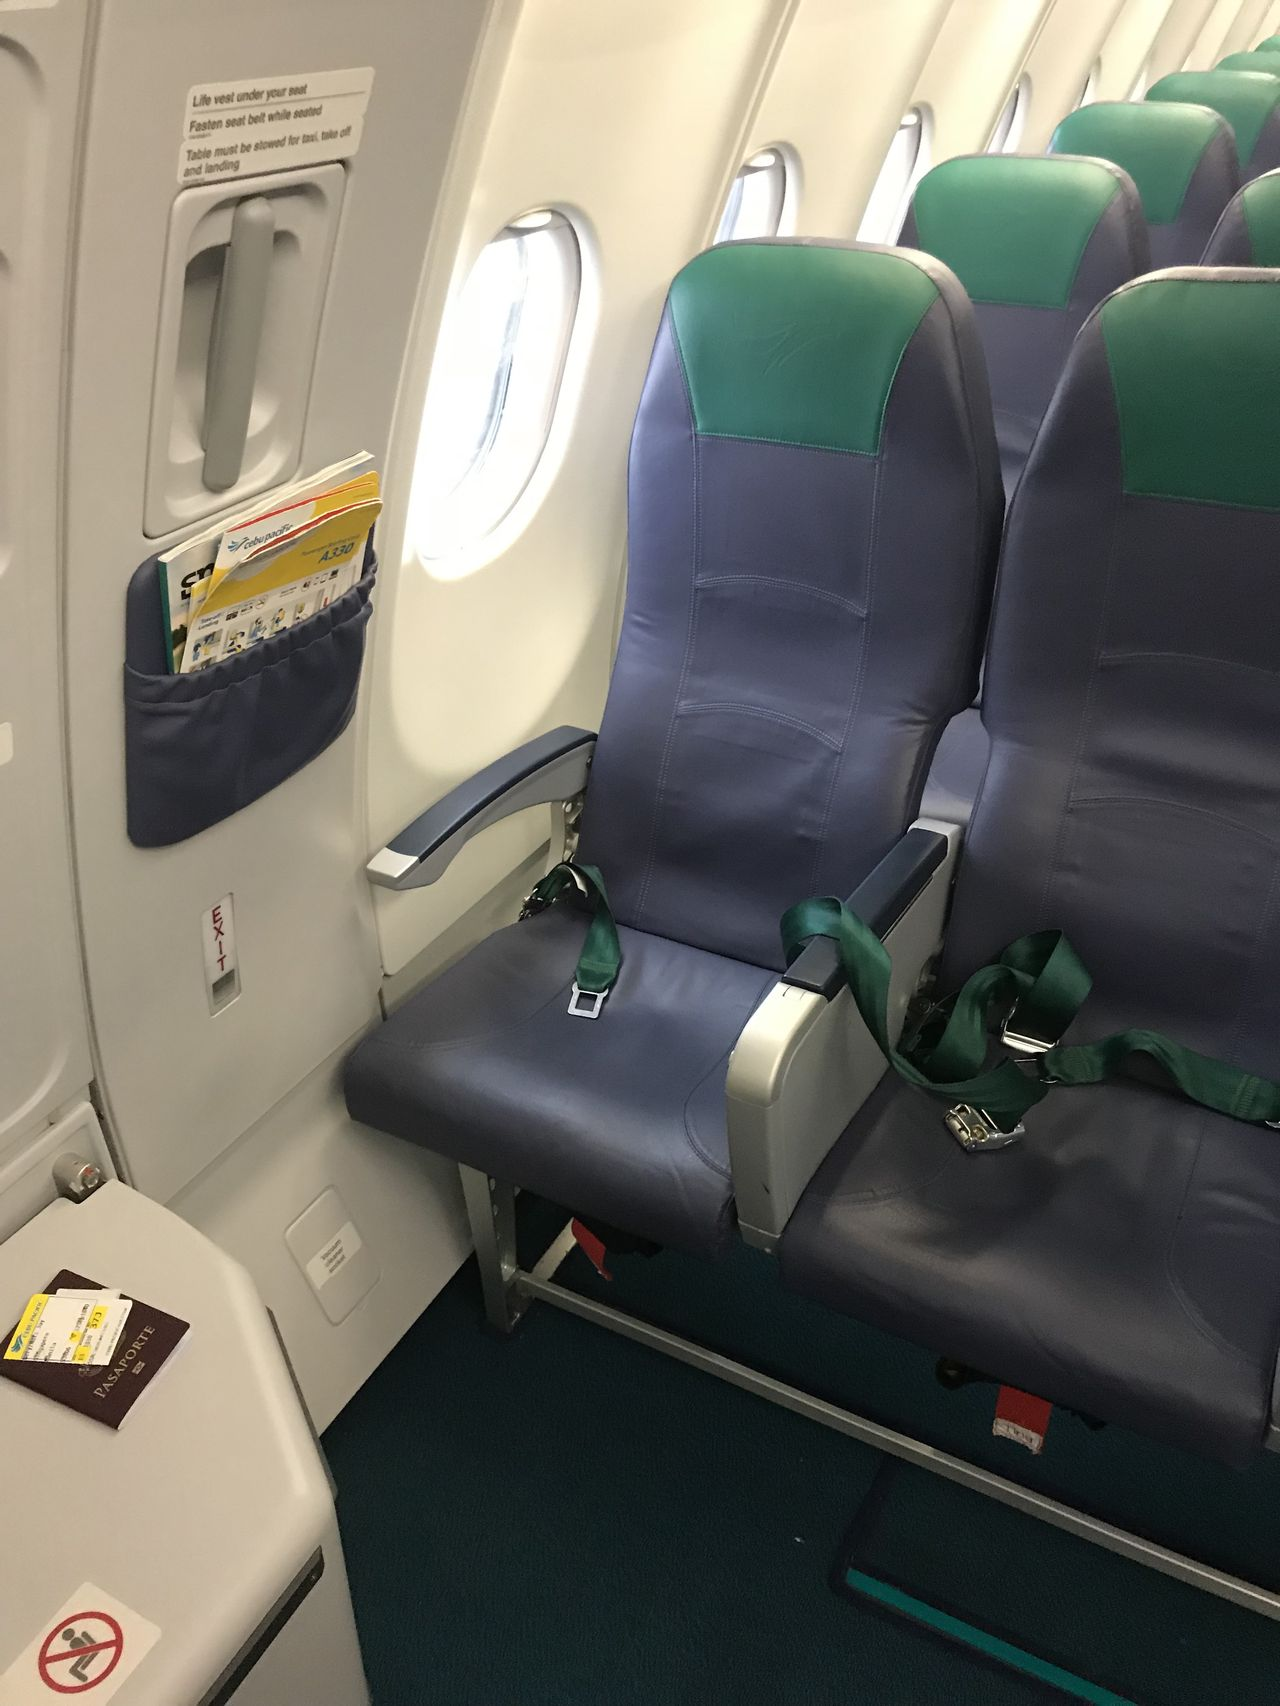 Review Of Cebu Pacific Flight From Singapore To Manila In Economy